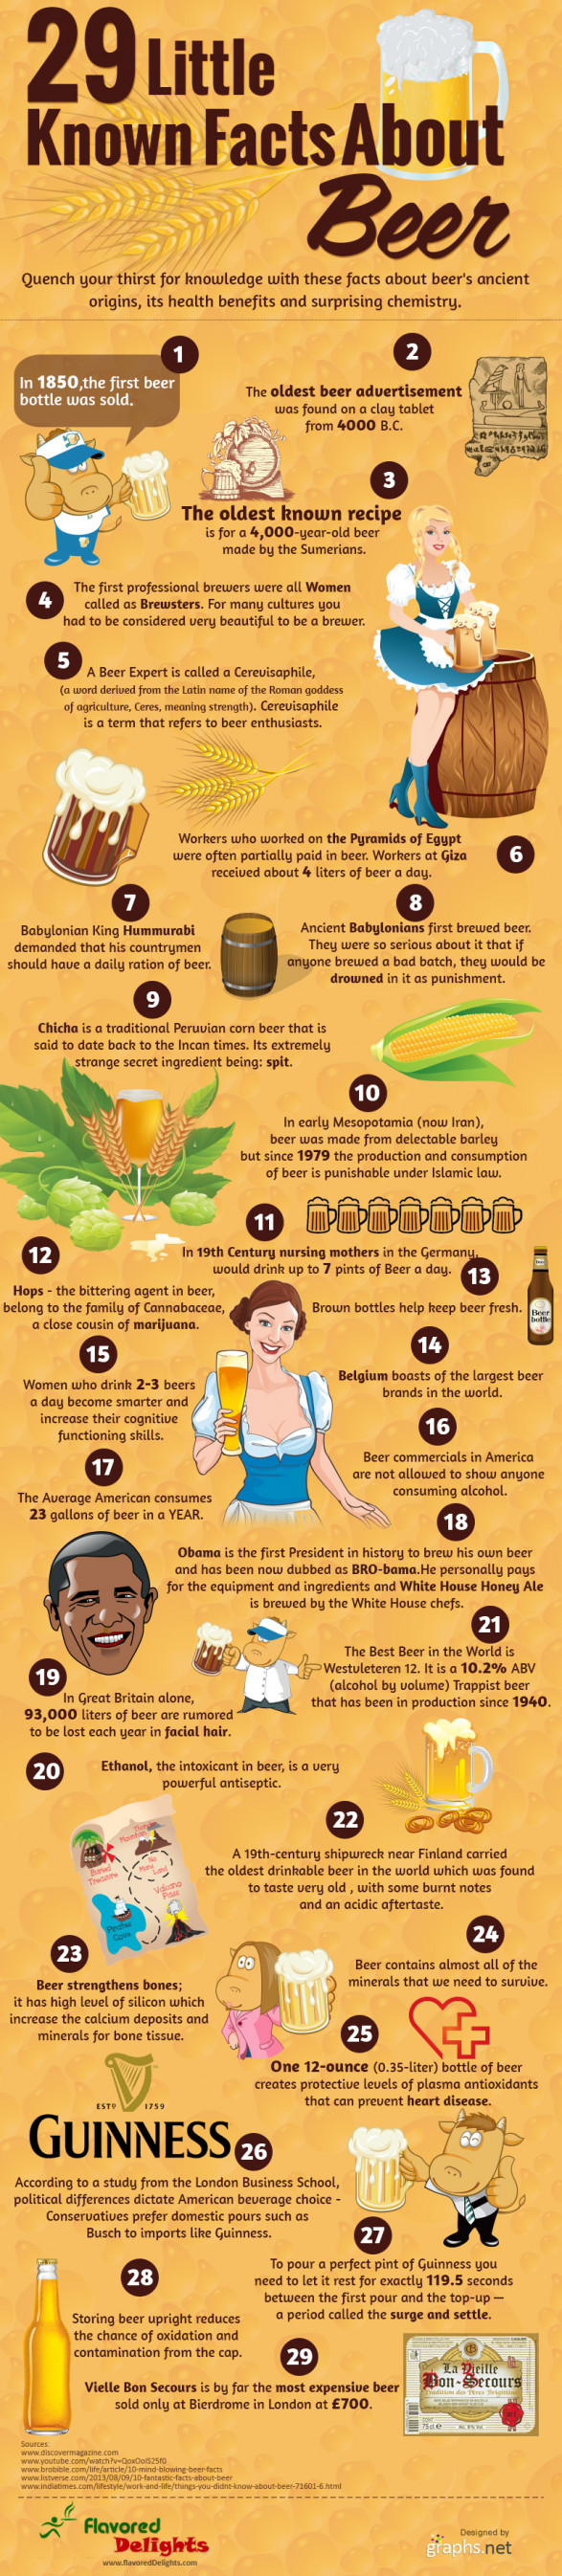 29 interesting facts of beer 5266092ae6685 w587 Birra, Quanto ti Adoro